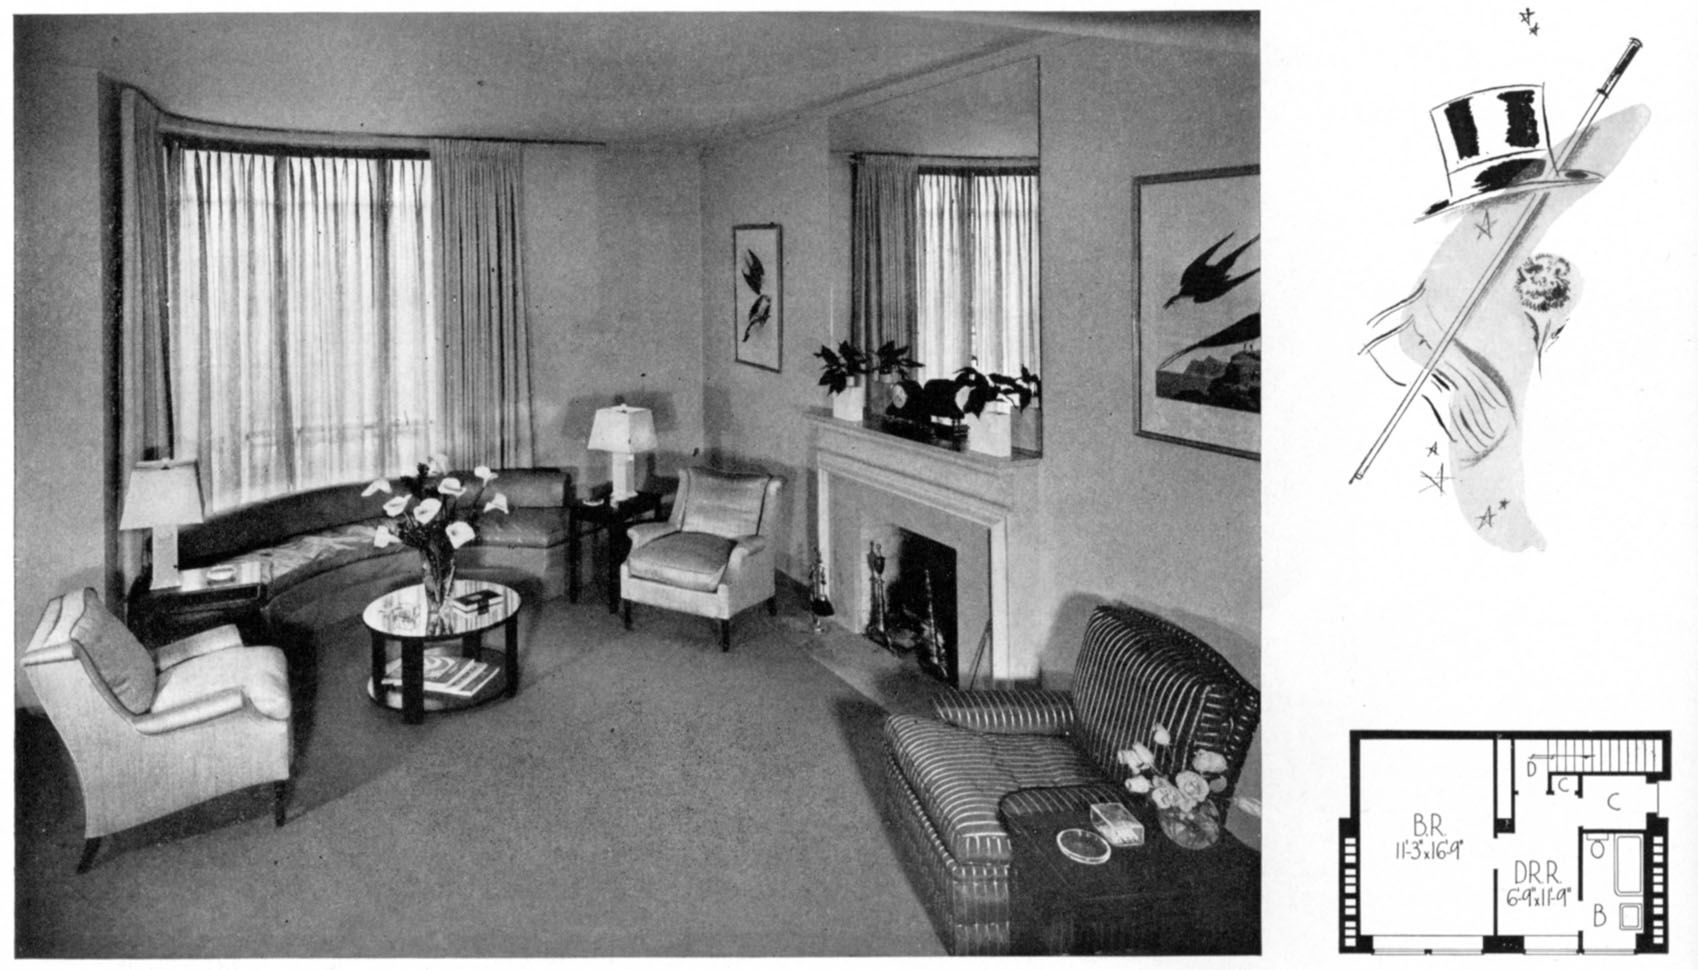 1930s interior design 1930s interior design living room bell wether interior design 1930 s